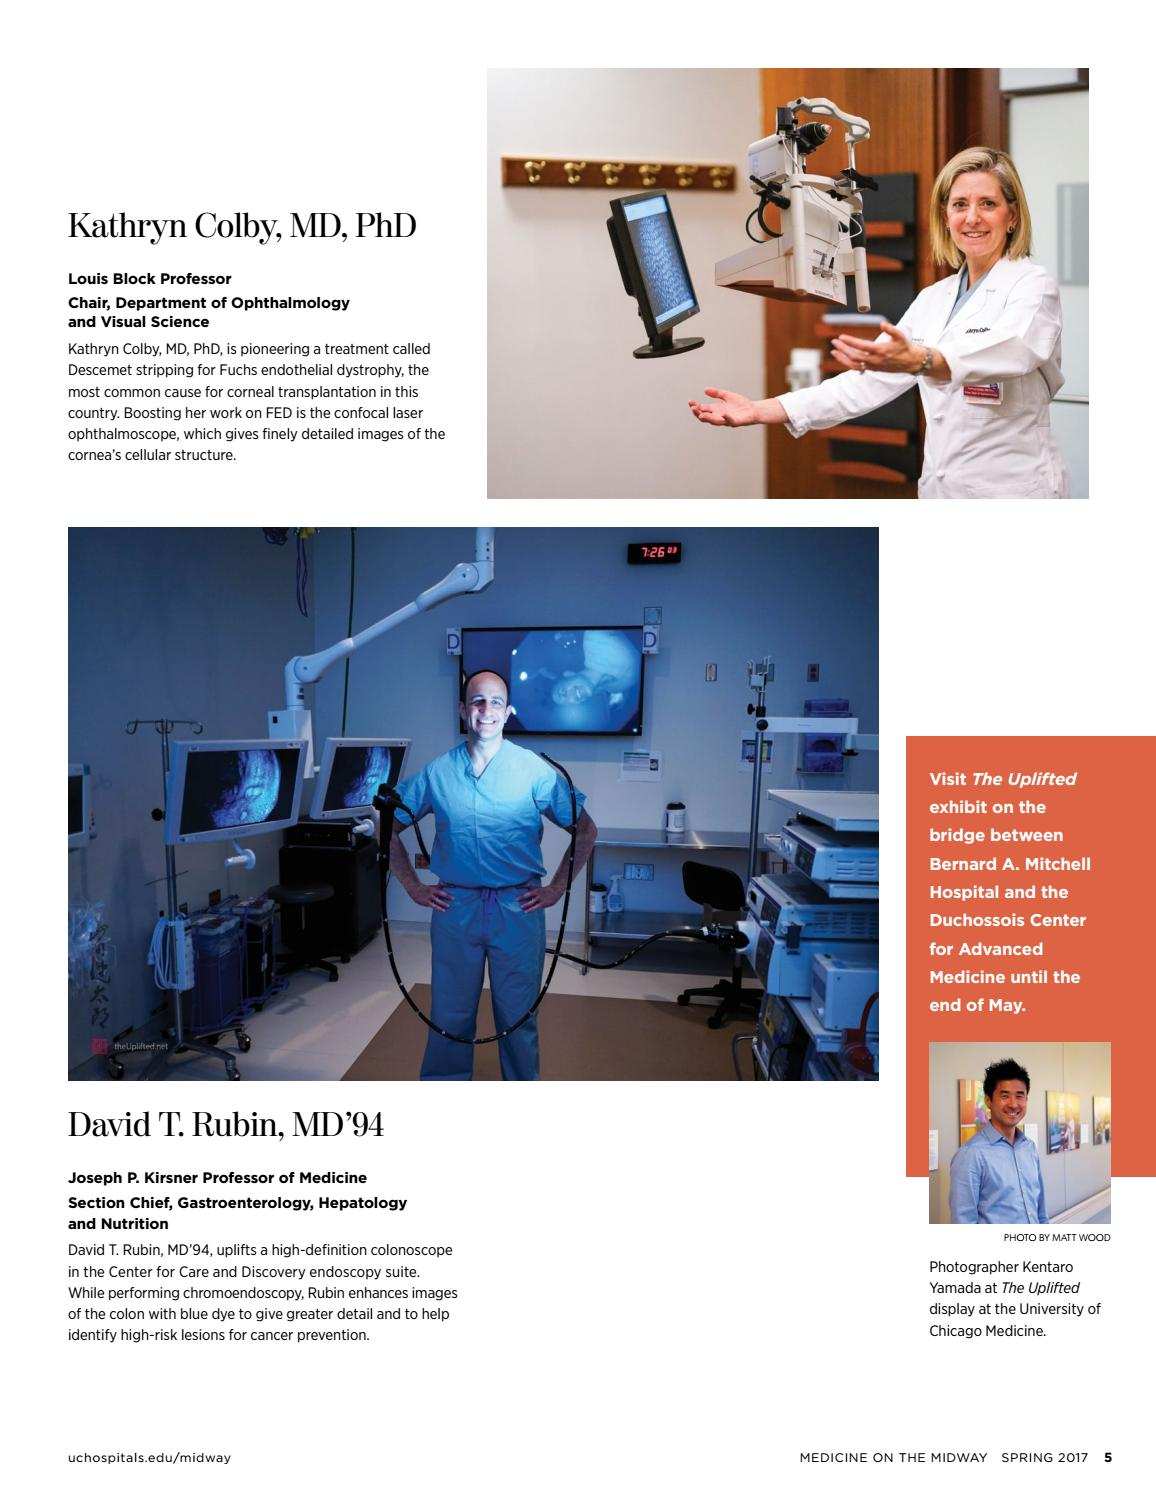 Medicine on the Midway - Spring 2017 by University of